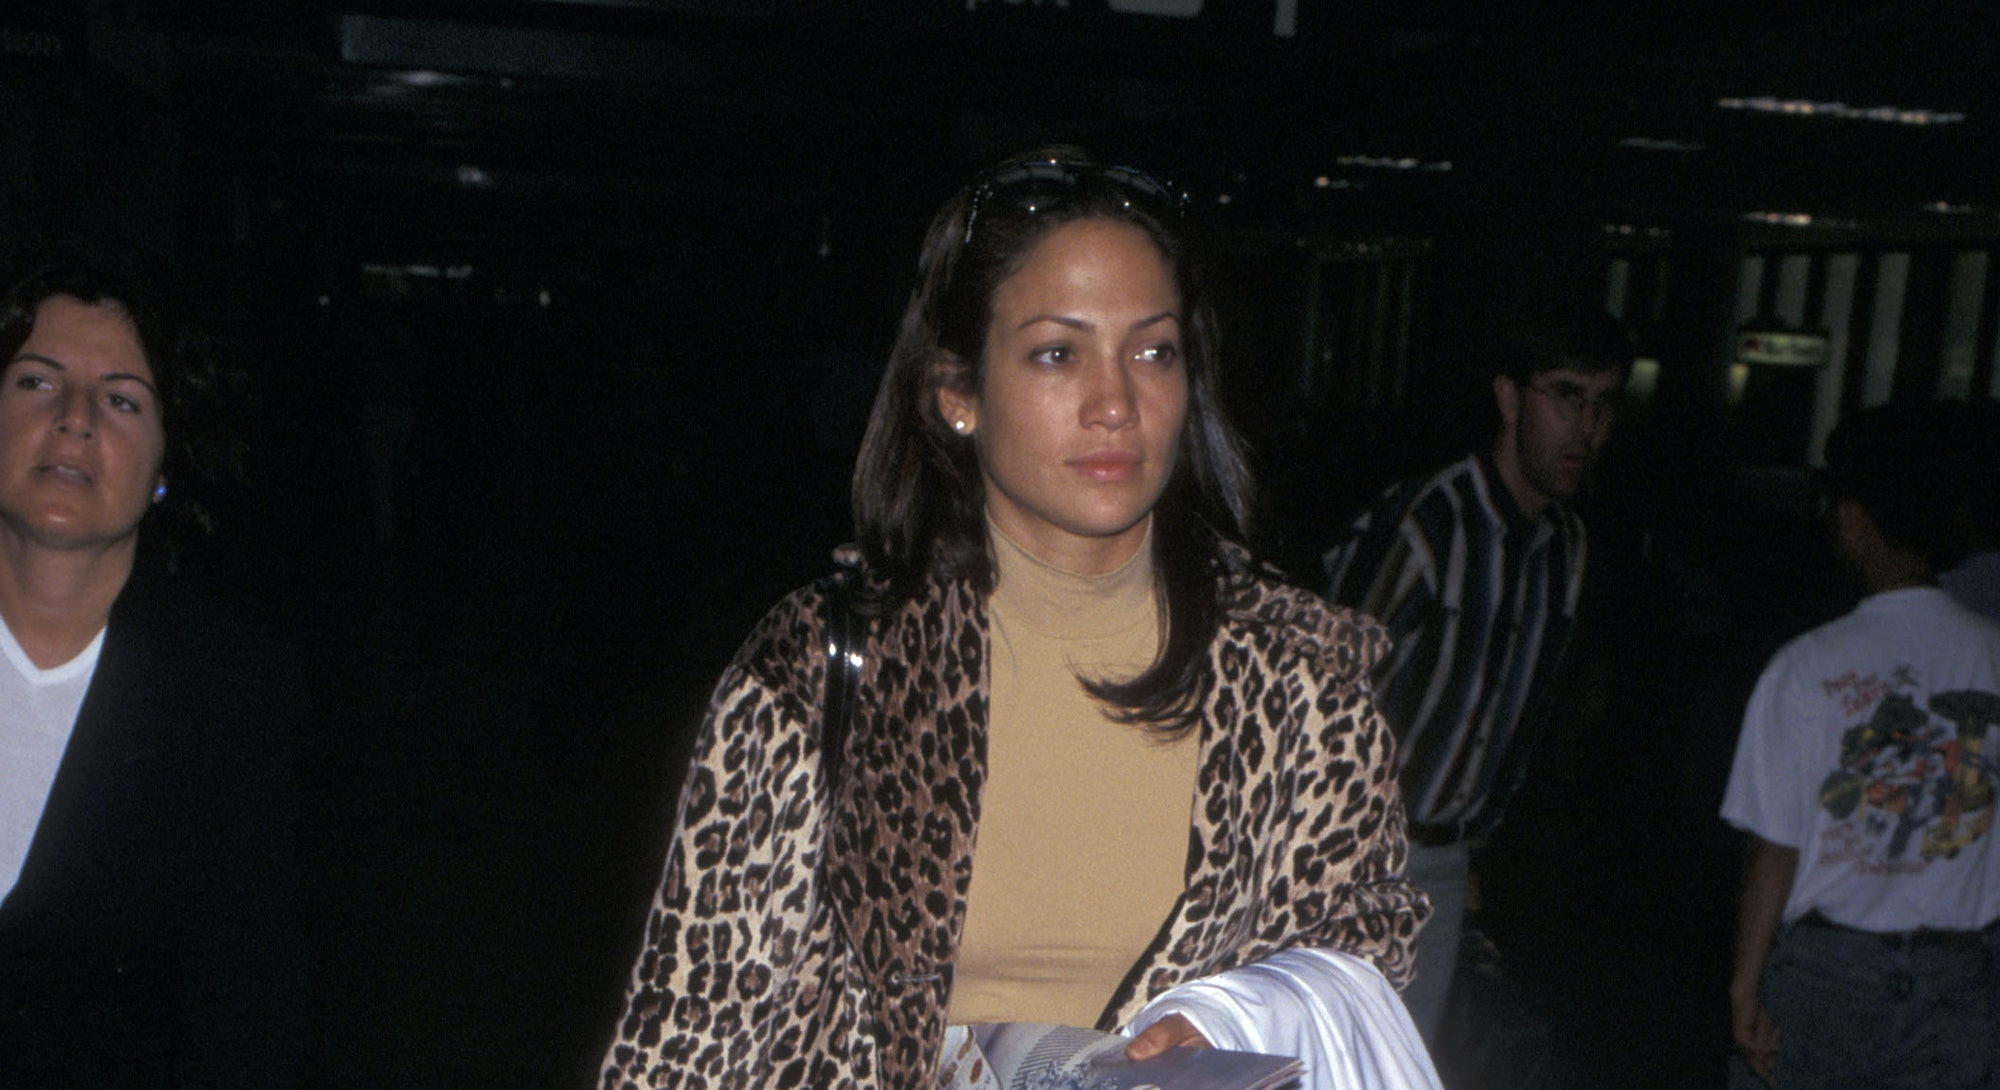 Jennifer Lopez at the airport in 1997.